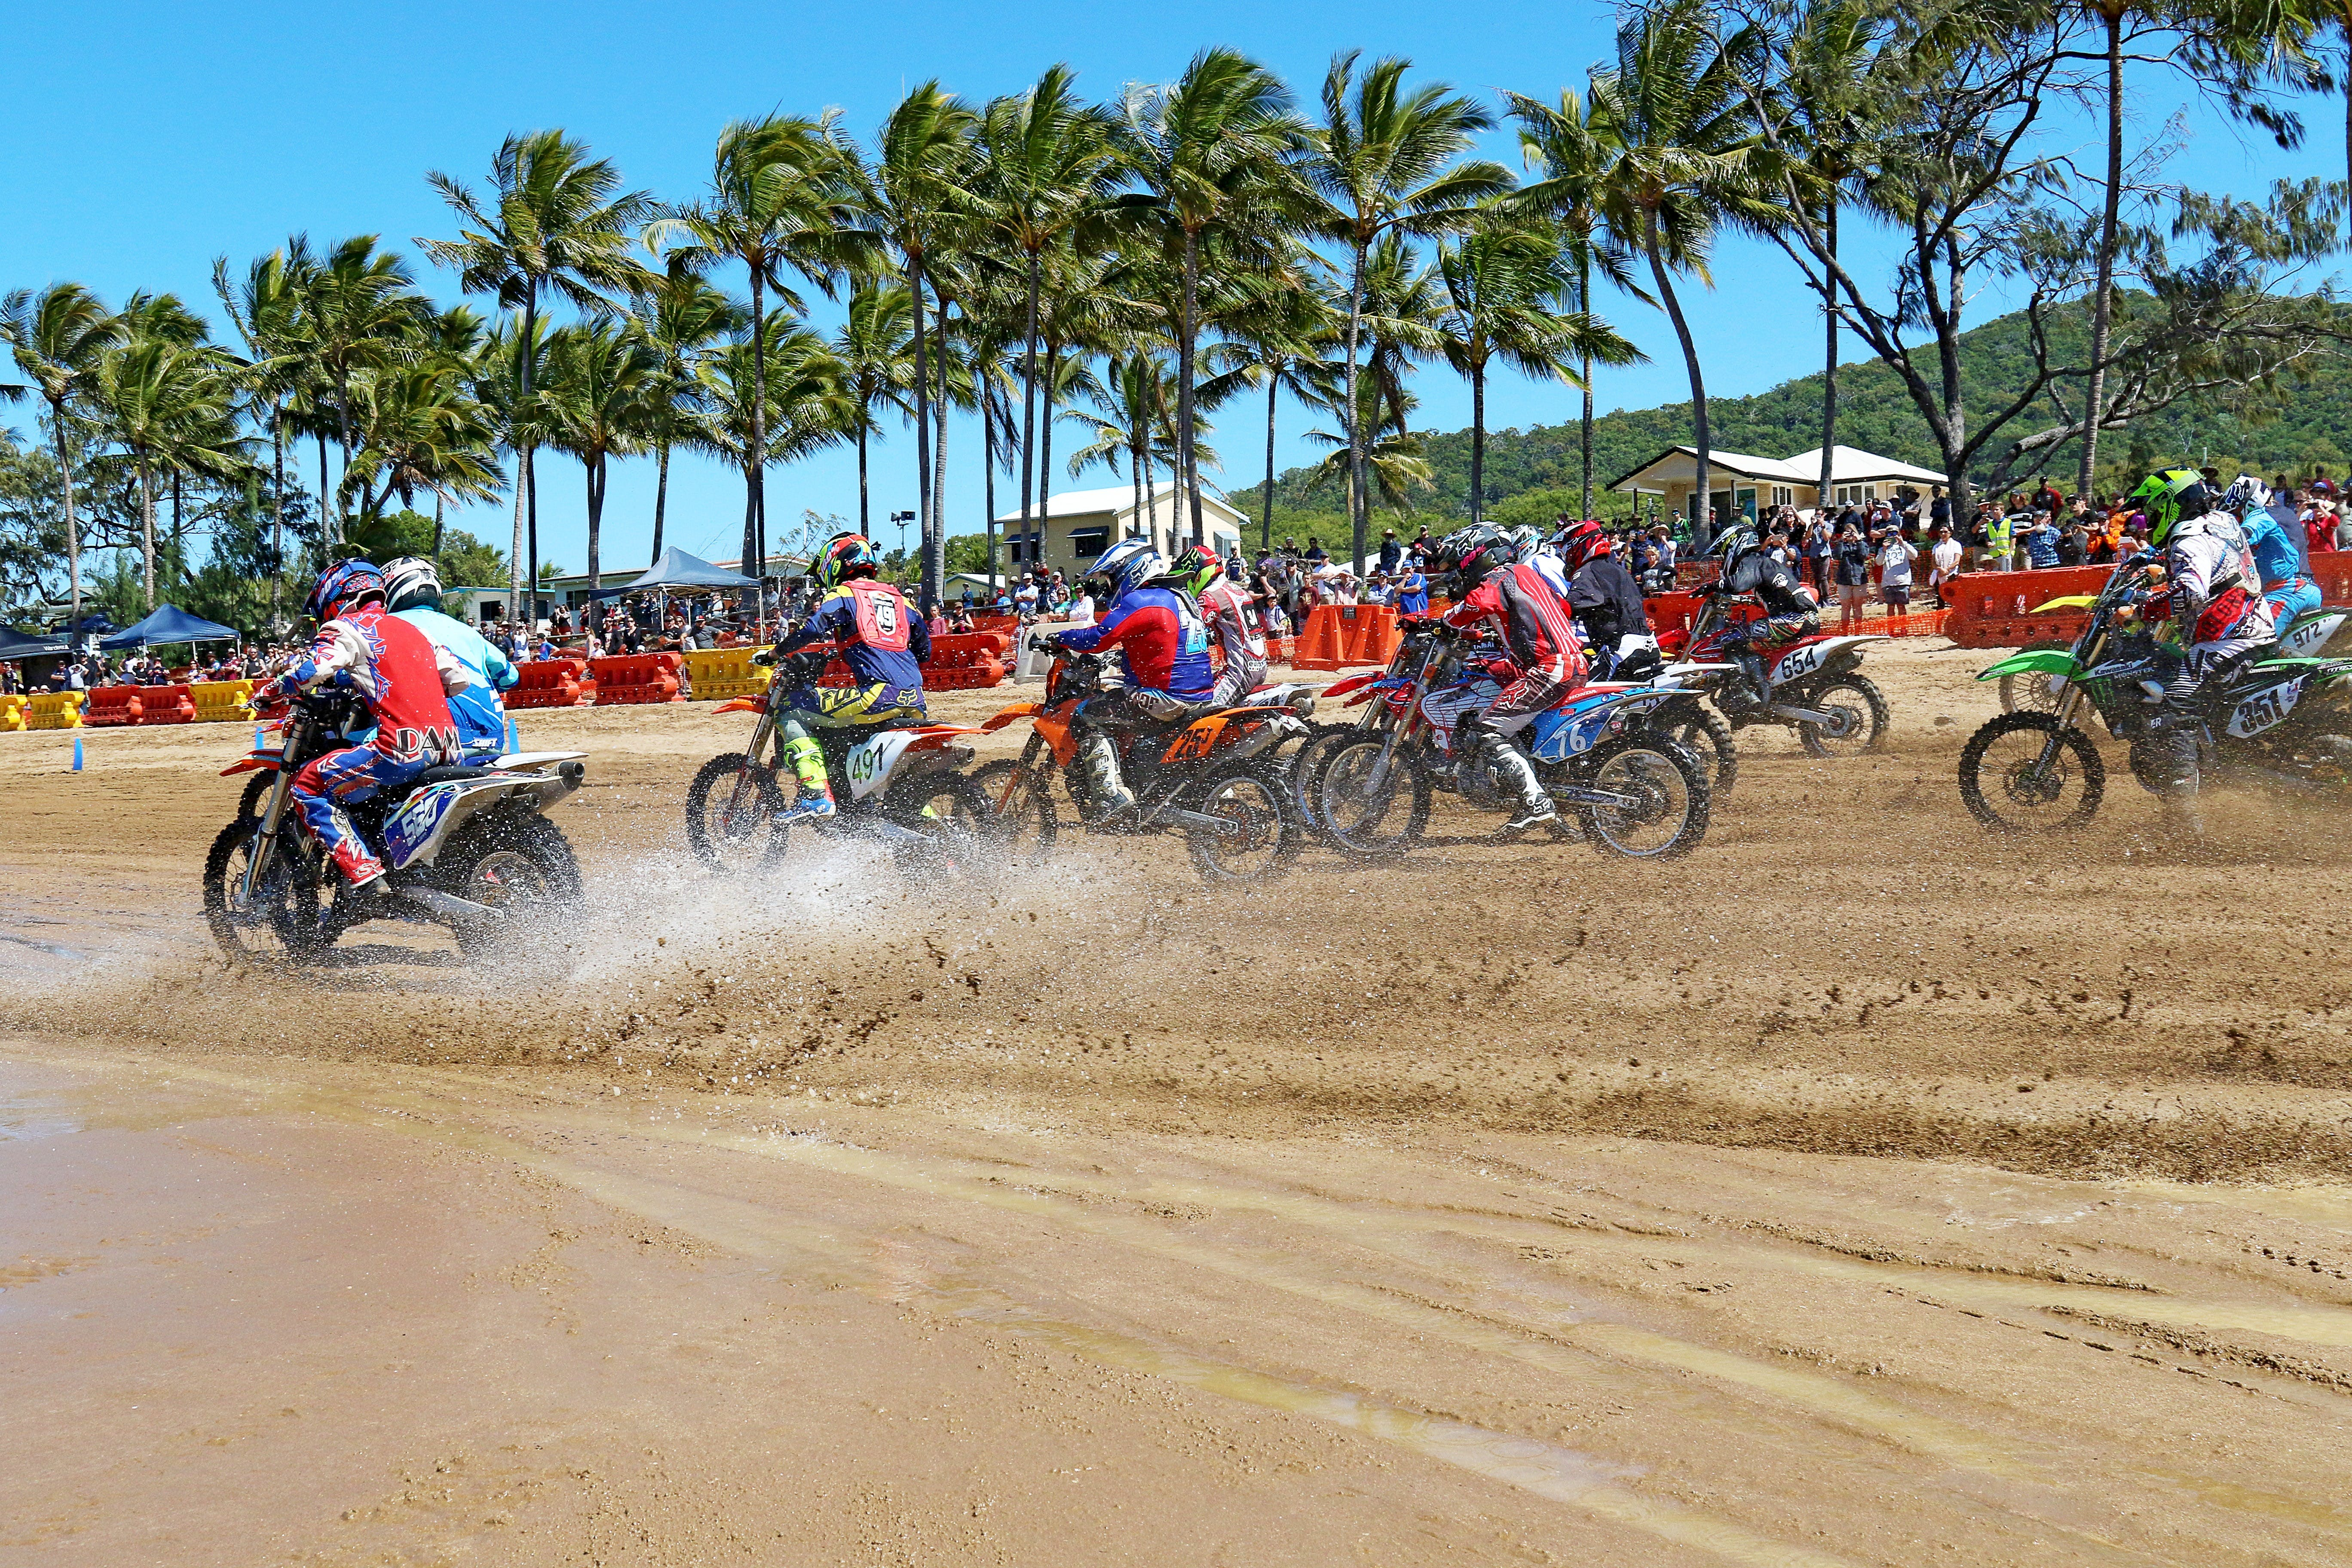 Beach Motorcycle Races - Accommodation Main Beach